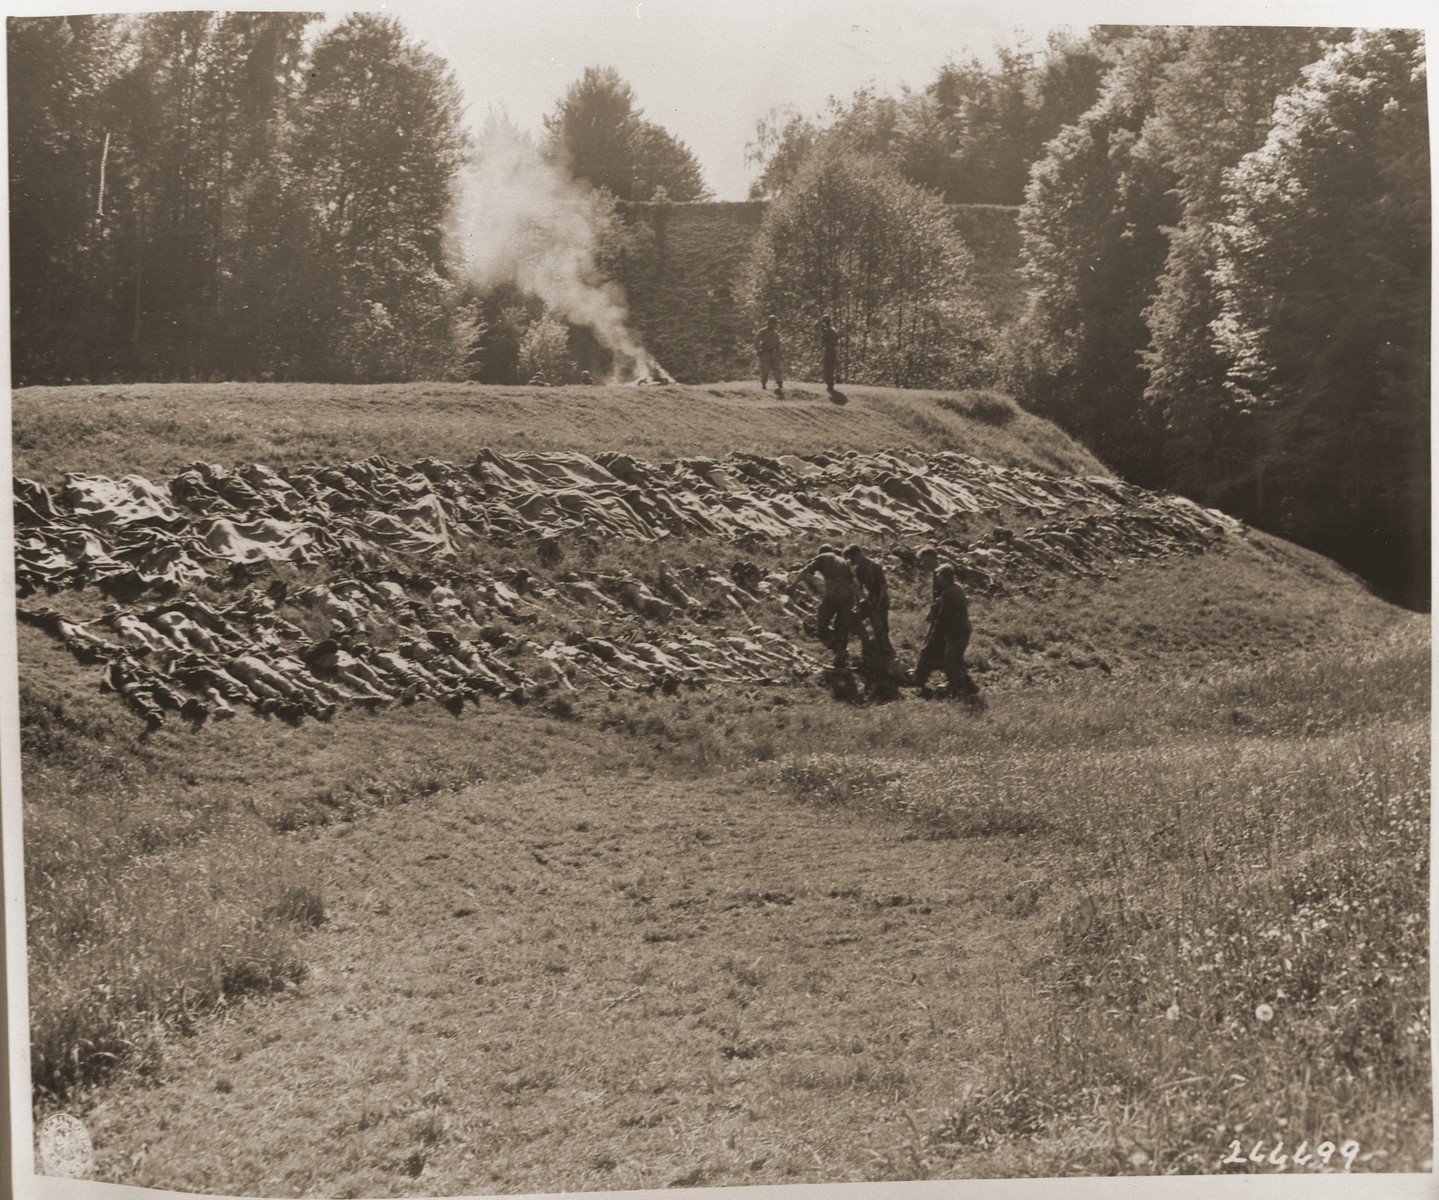 Bodies exhumed from a mass grave near the town of Nammering are laid out on a hillside.